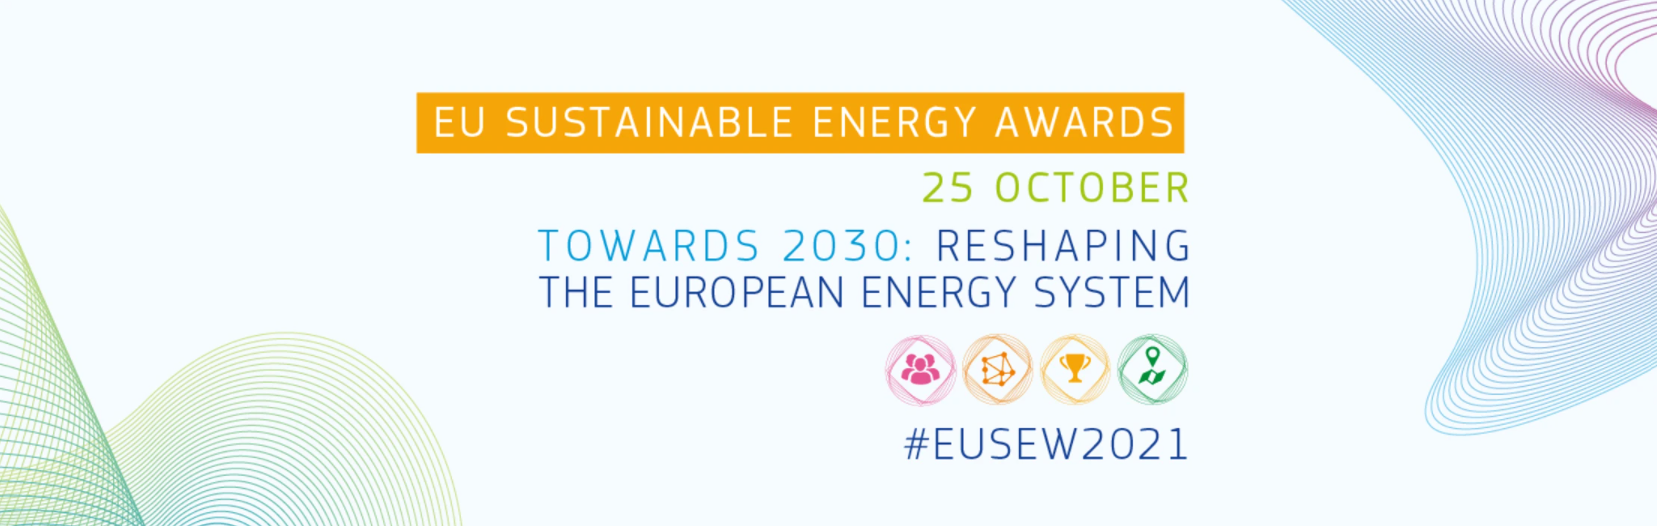 RenOnBill selected as finalist for the EUSEW2021 Awards: help us win with your vote!